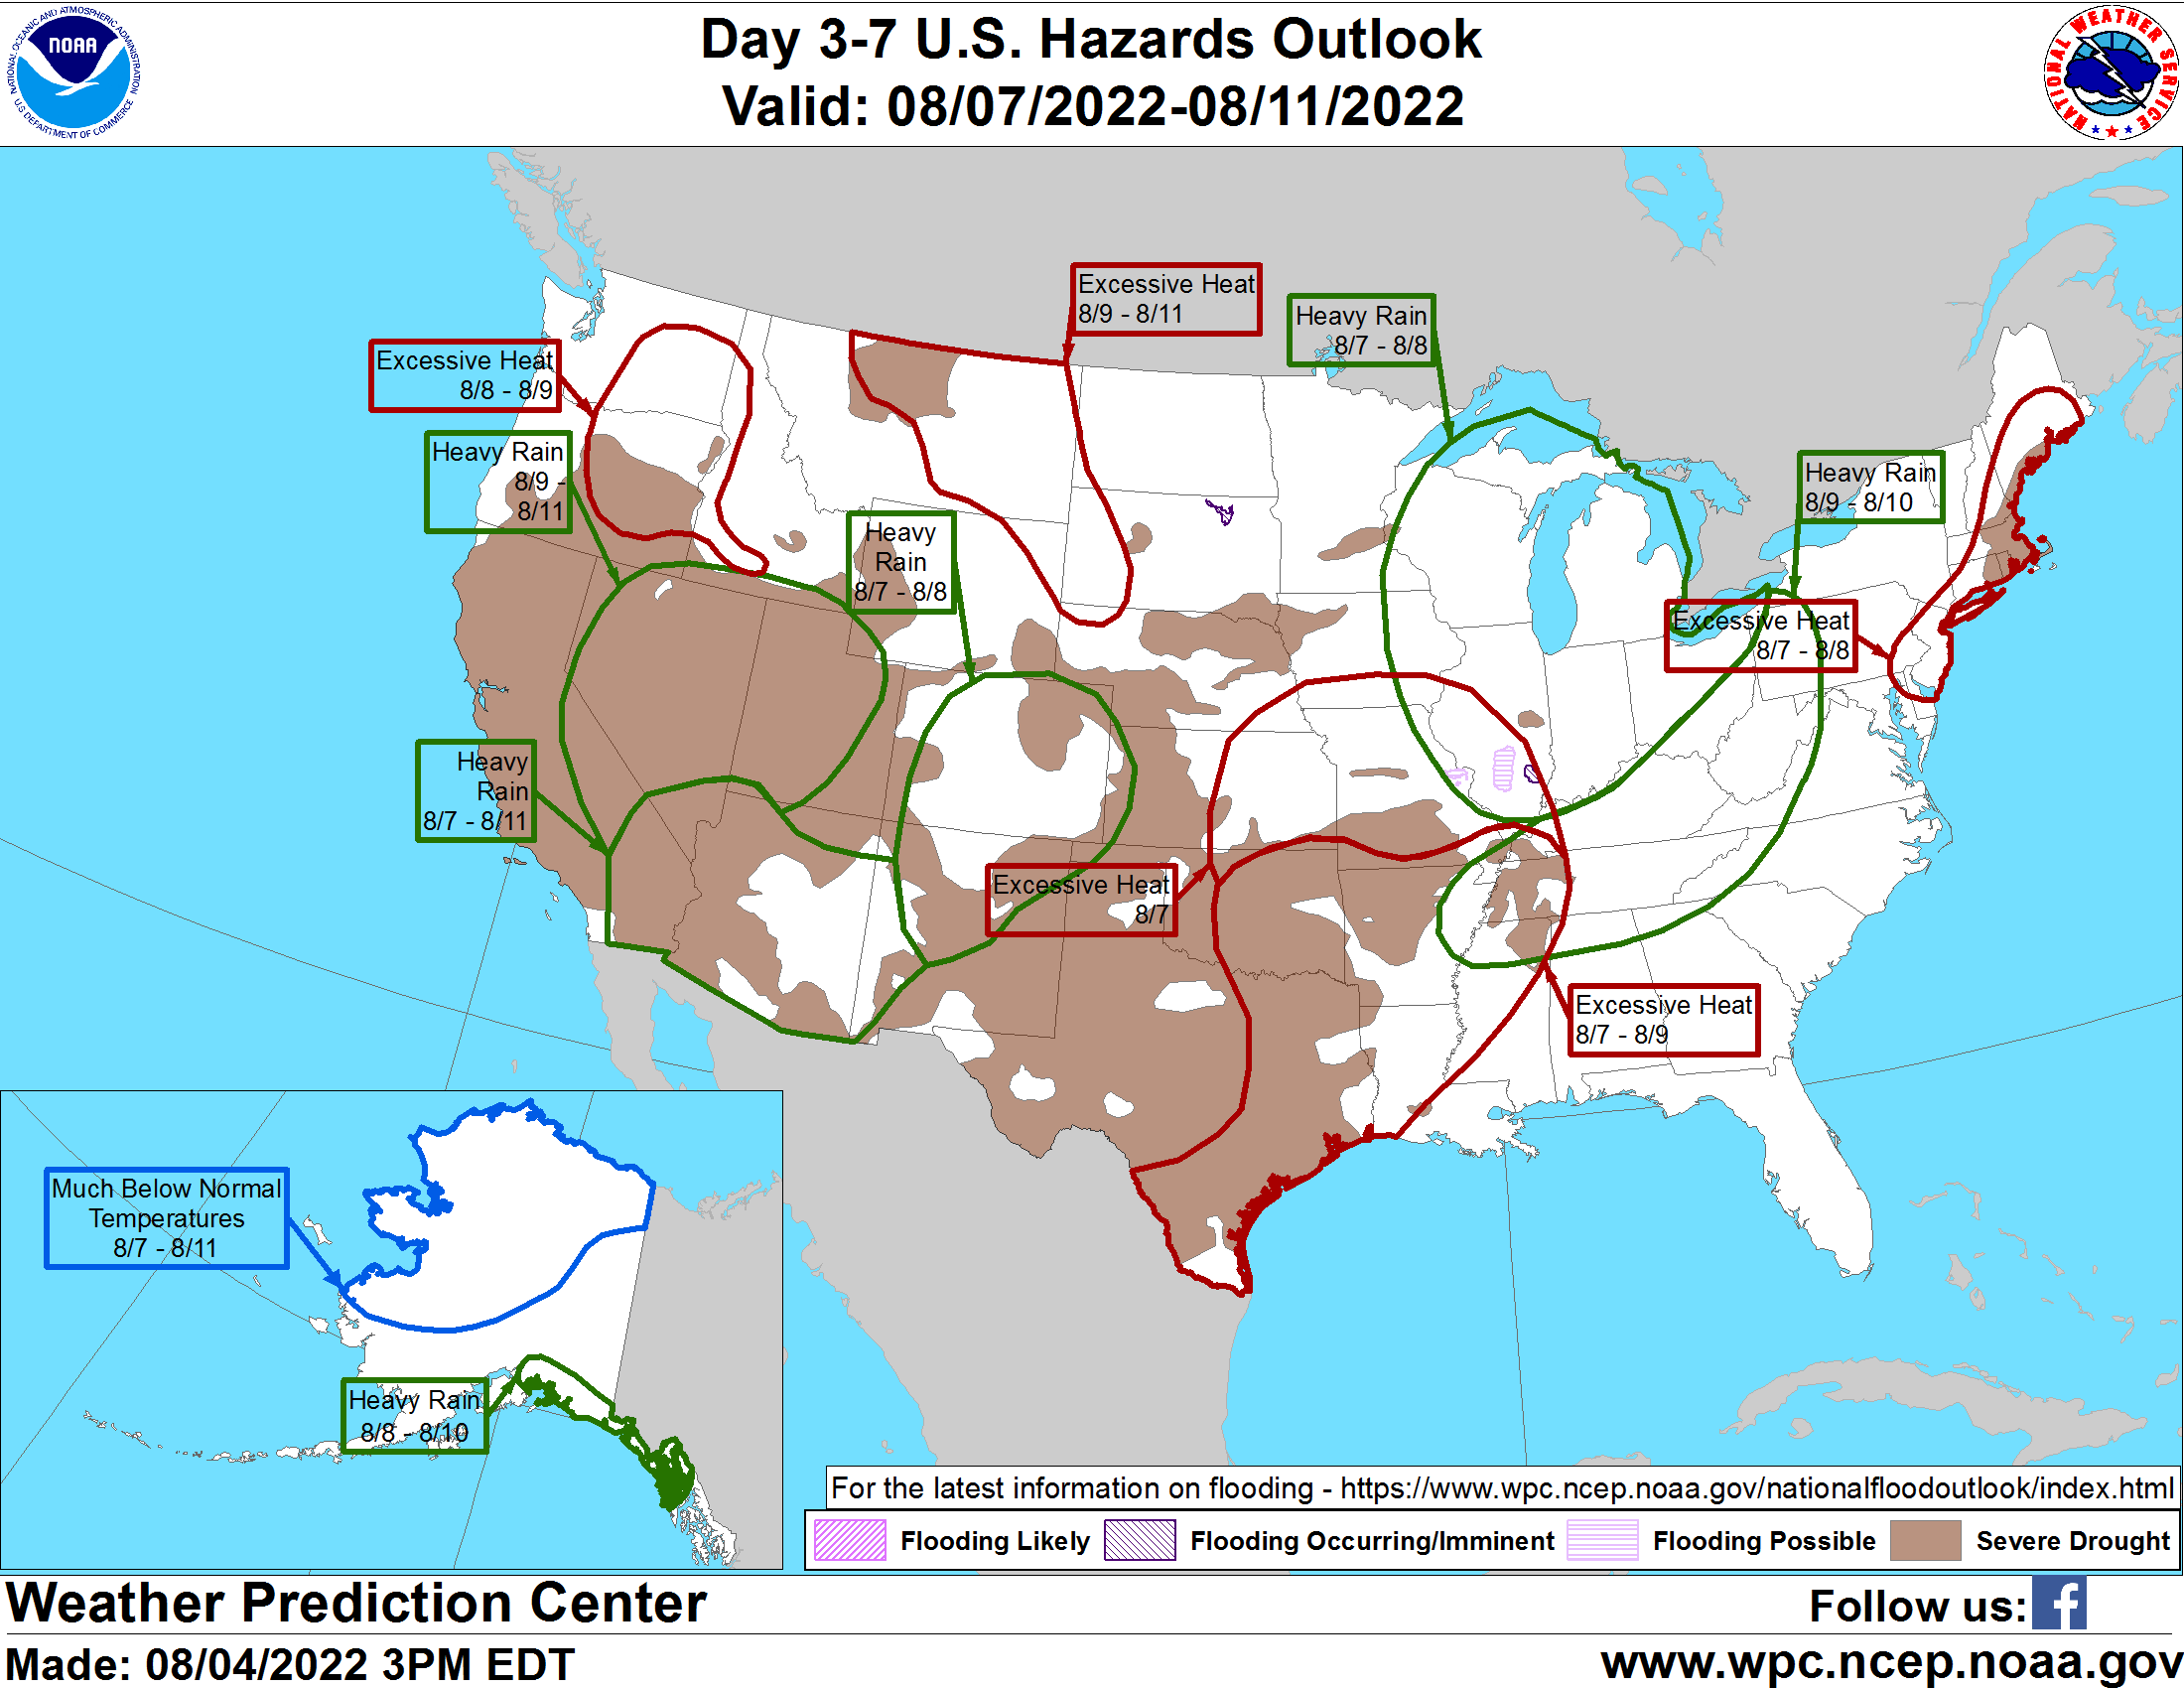 Day 3-7 hazards outlook